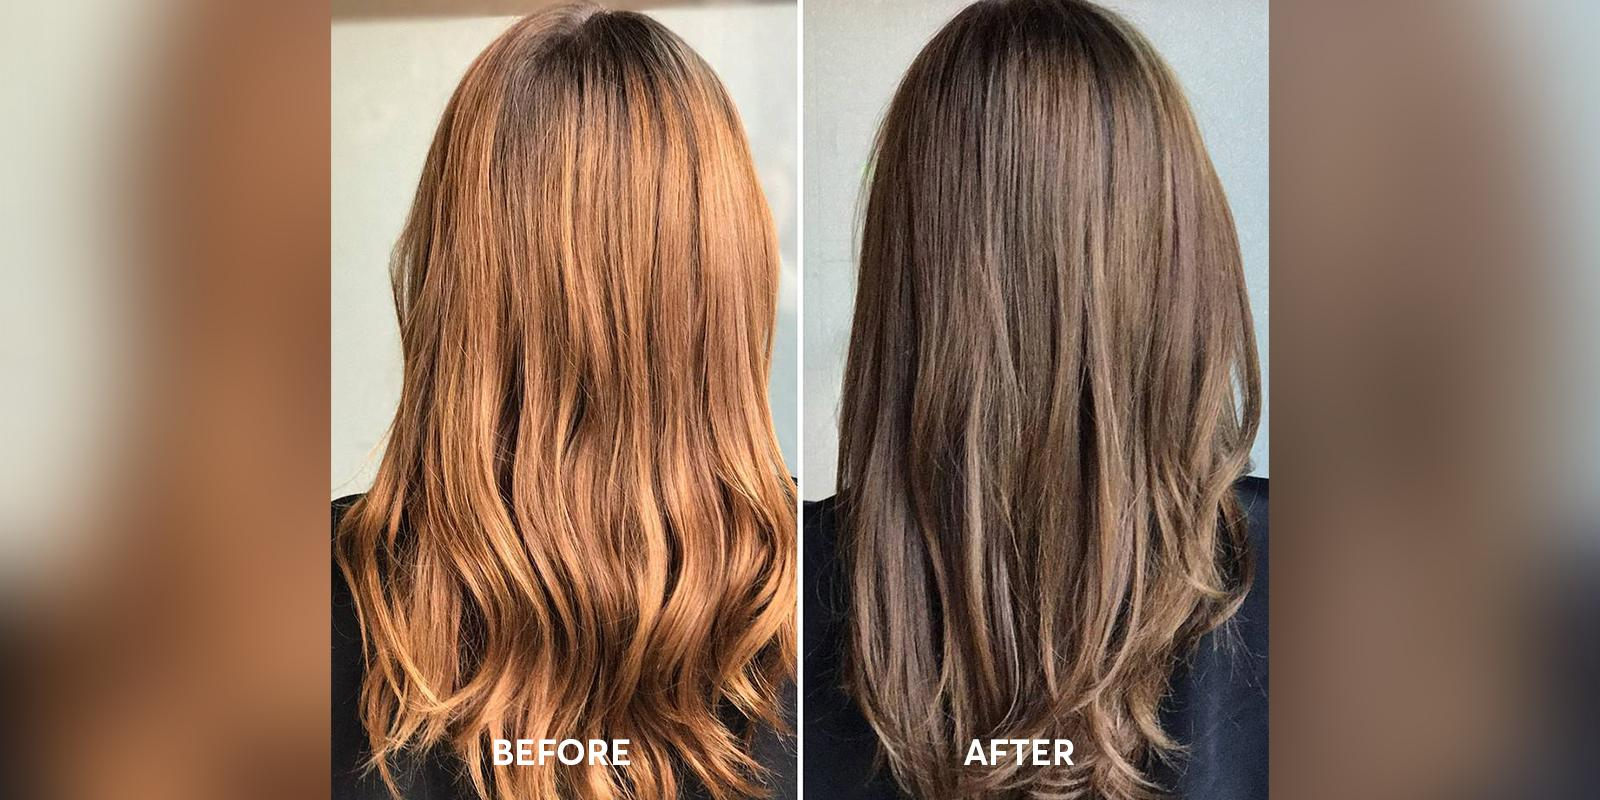 Before and After of Veneto Hair color application